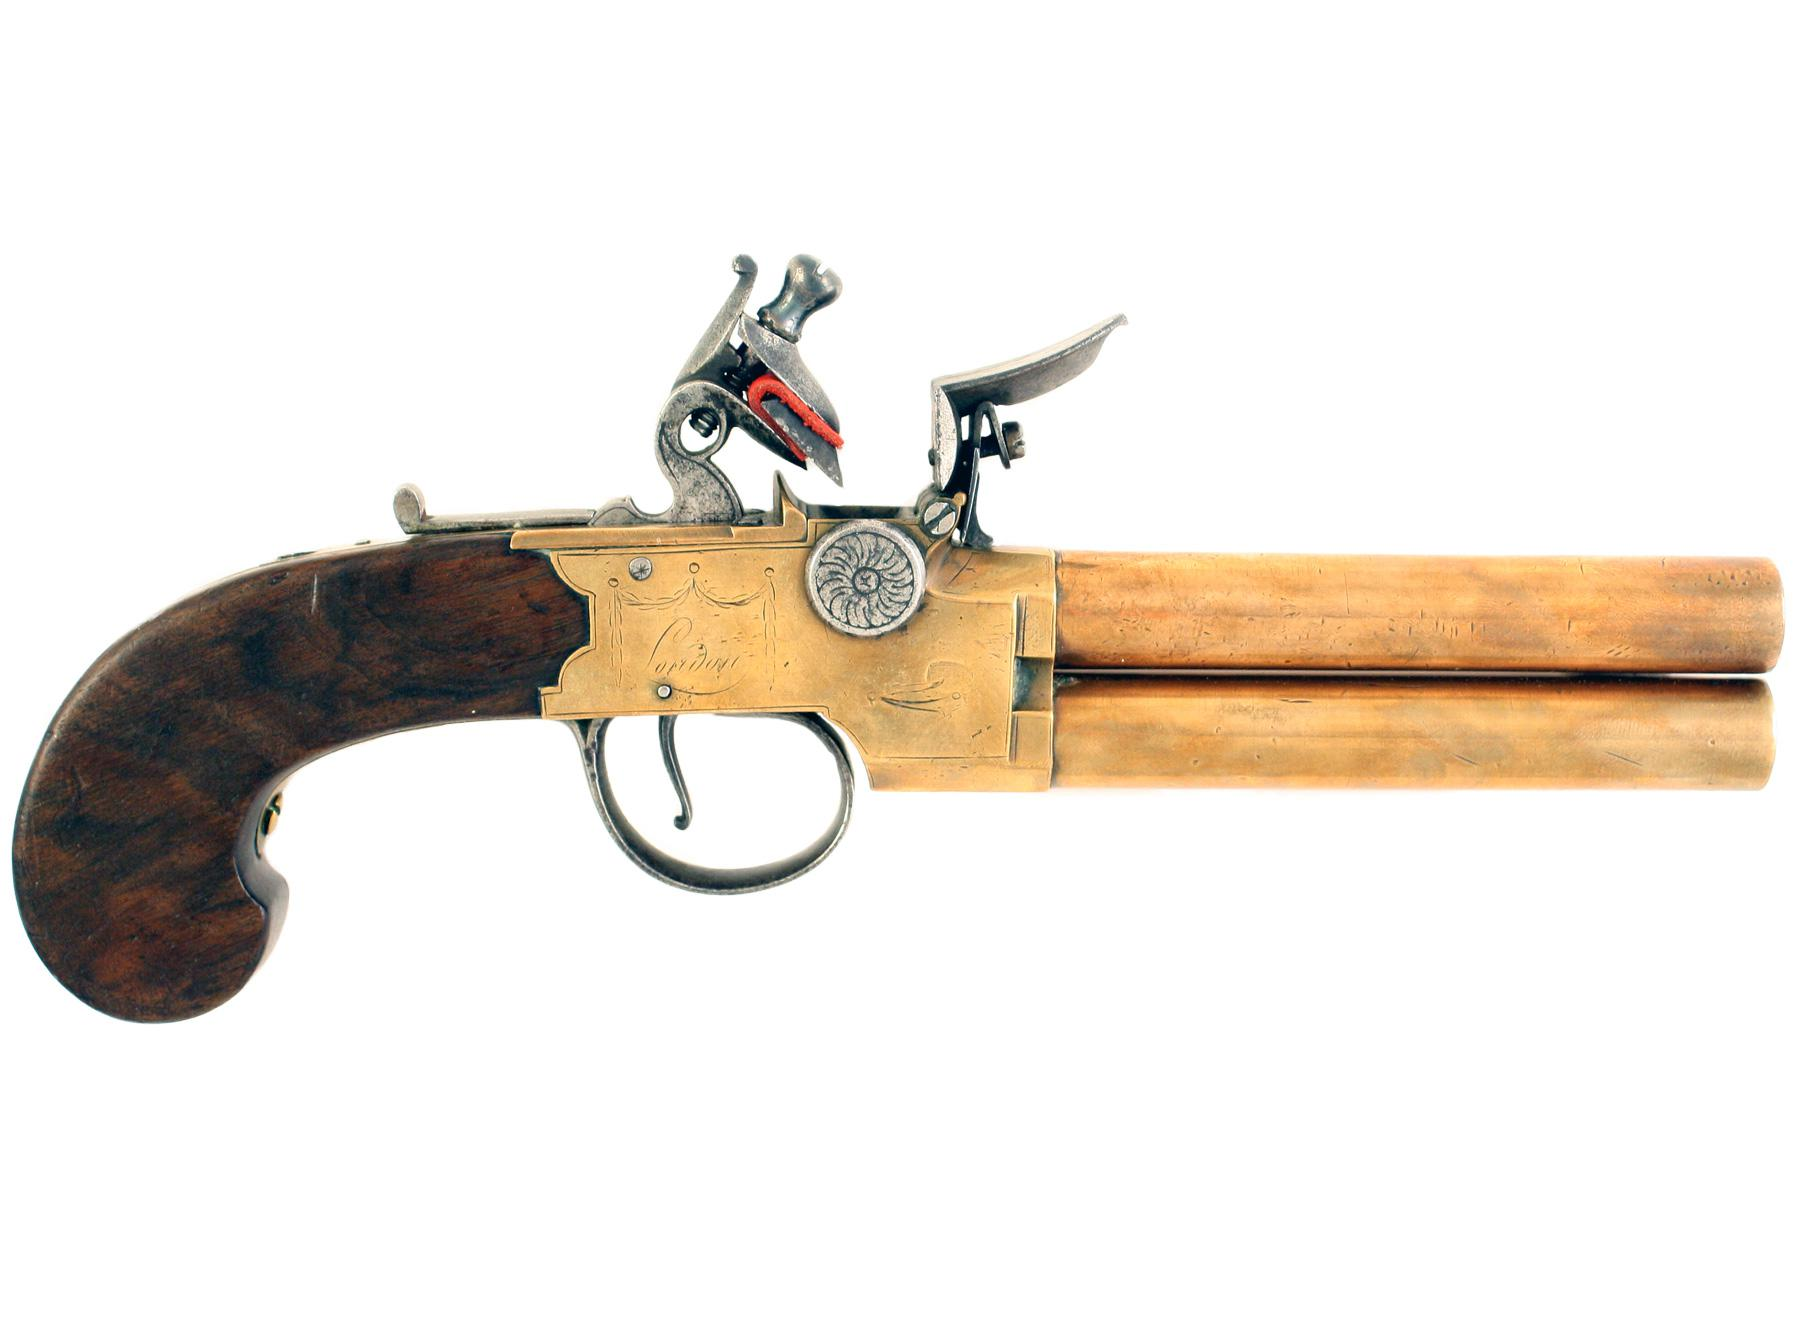 A Flintlock Tap-Action Pistol